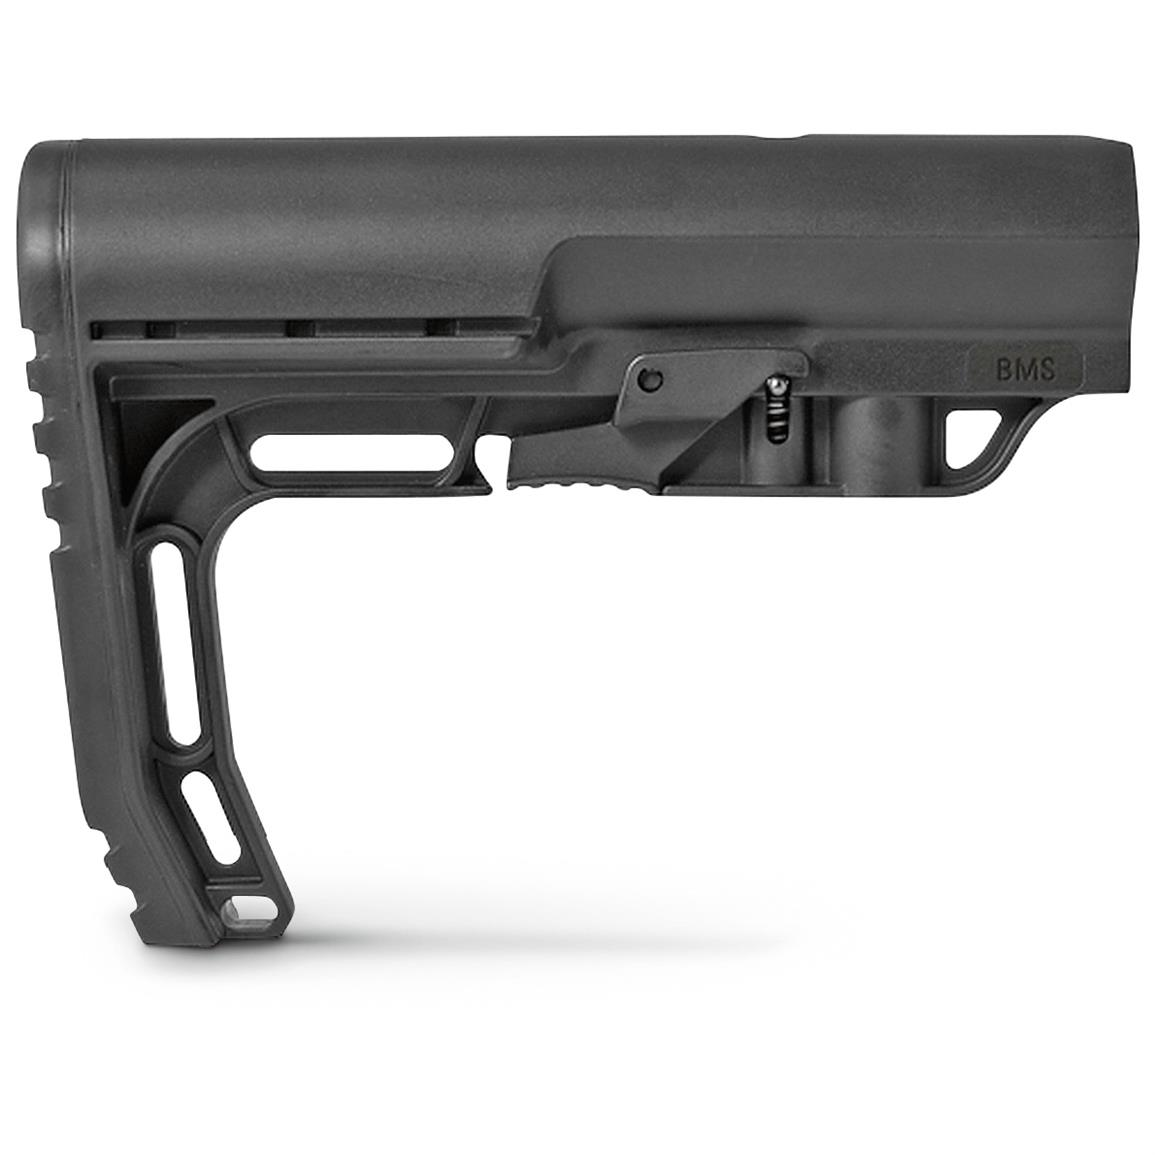 Mission First Tactical Minimalist Stock, Commercial Size, AR-15